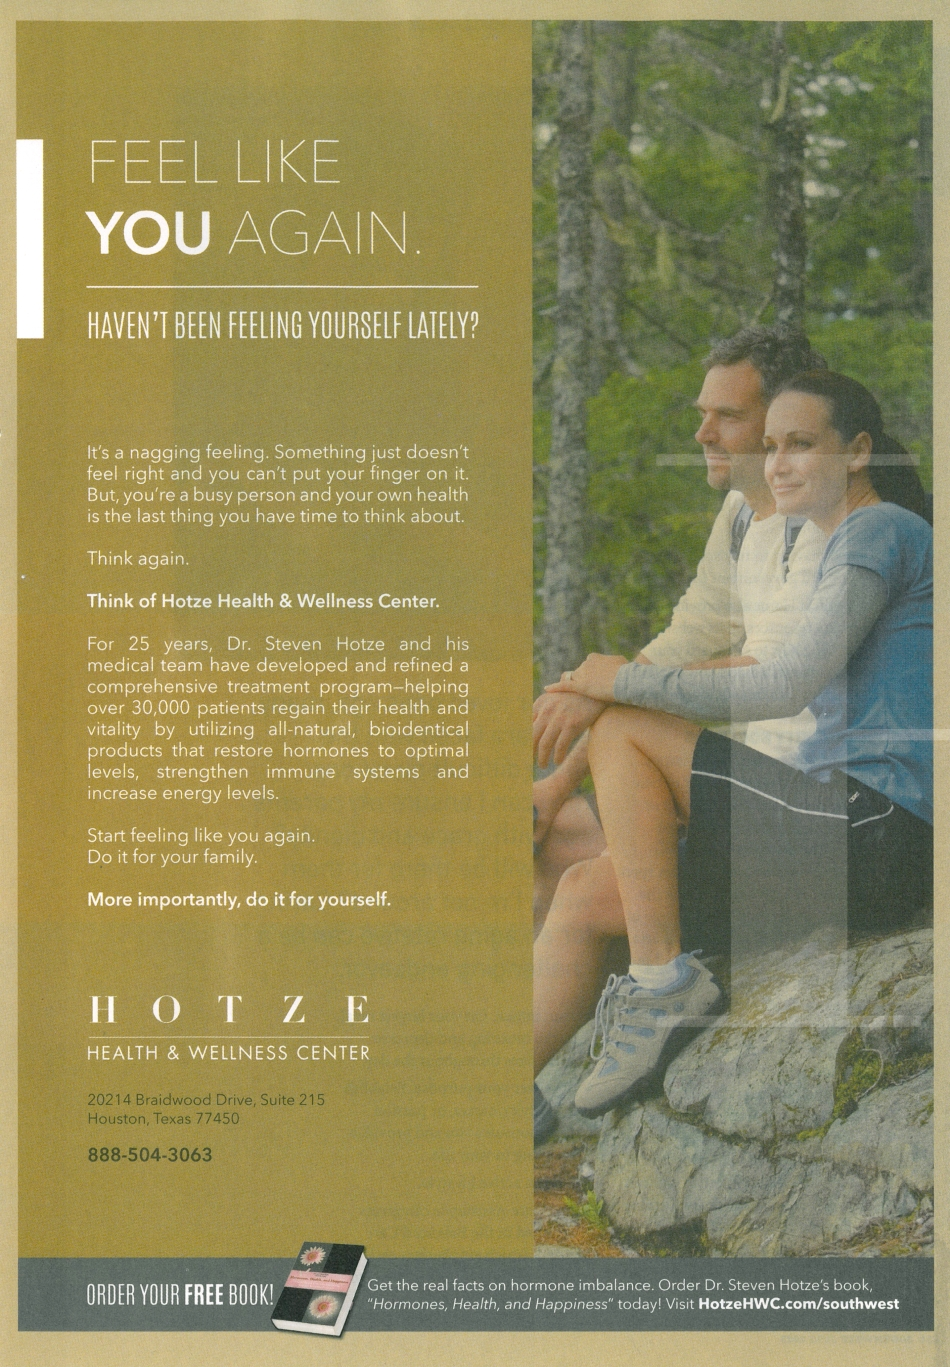 Hotze Health and Wellness Center